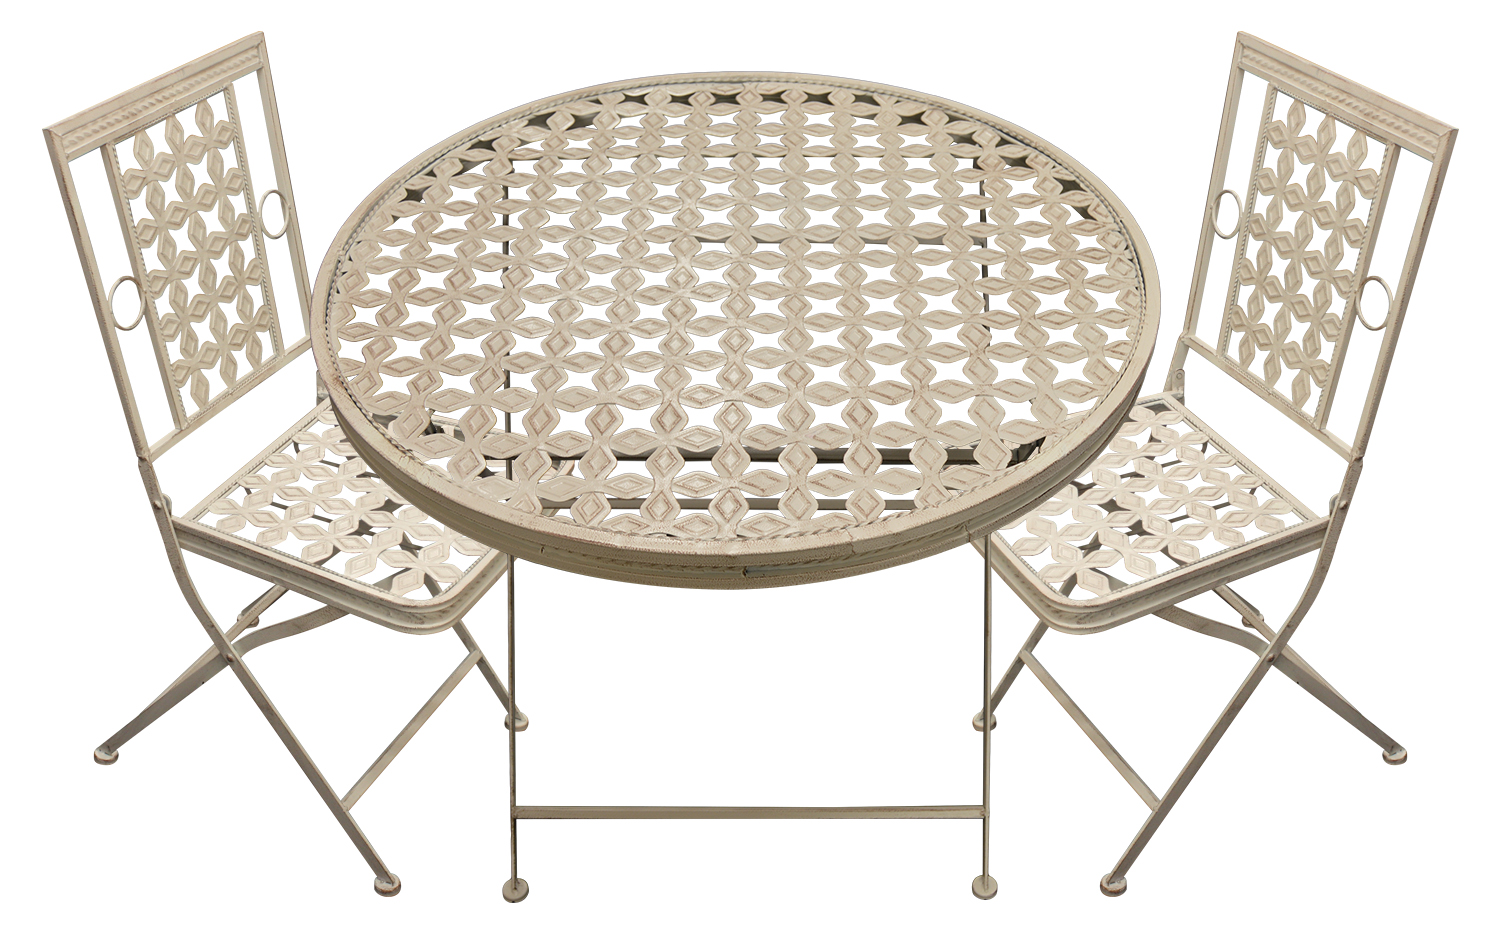 Folding Round Garden Patio Table With 2 Square Chairs Outdoor Metal Furniture